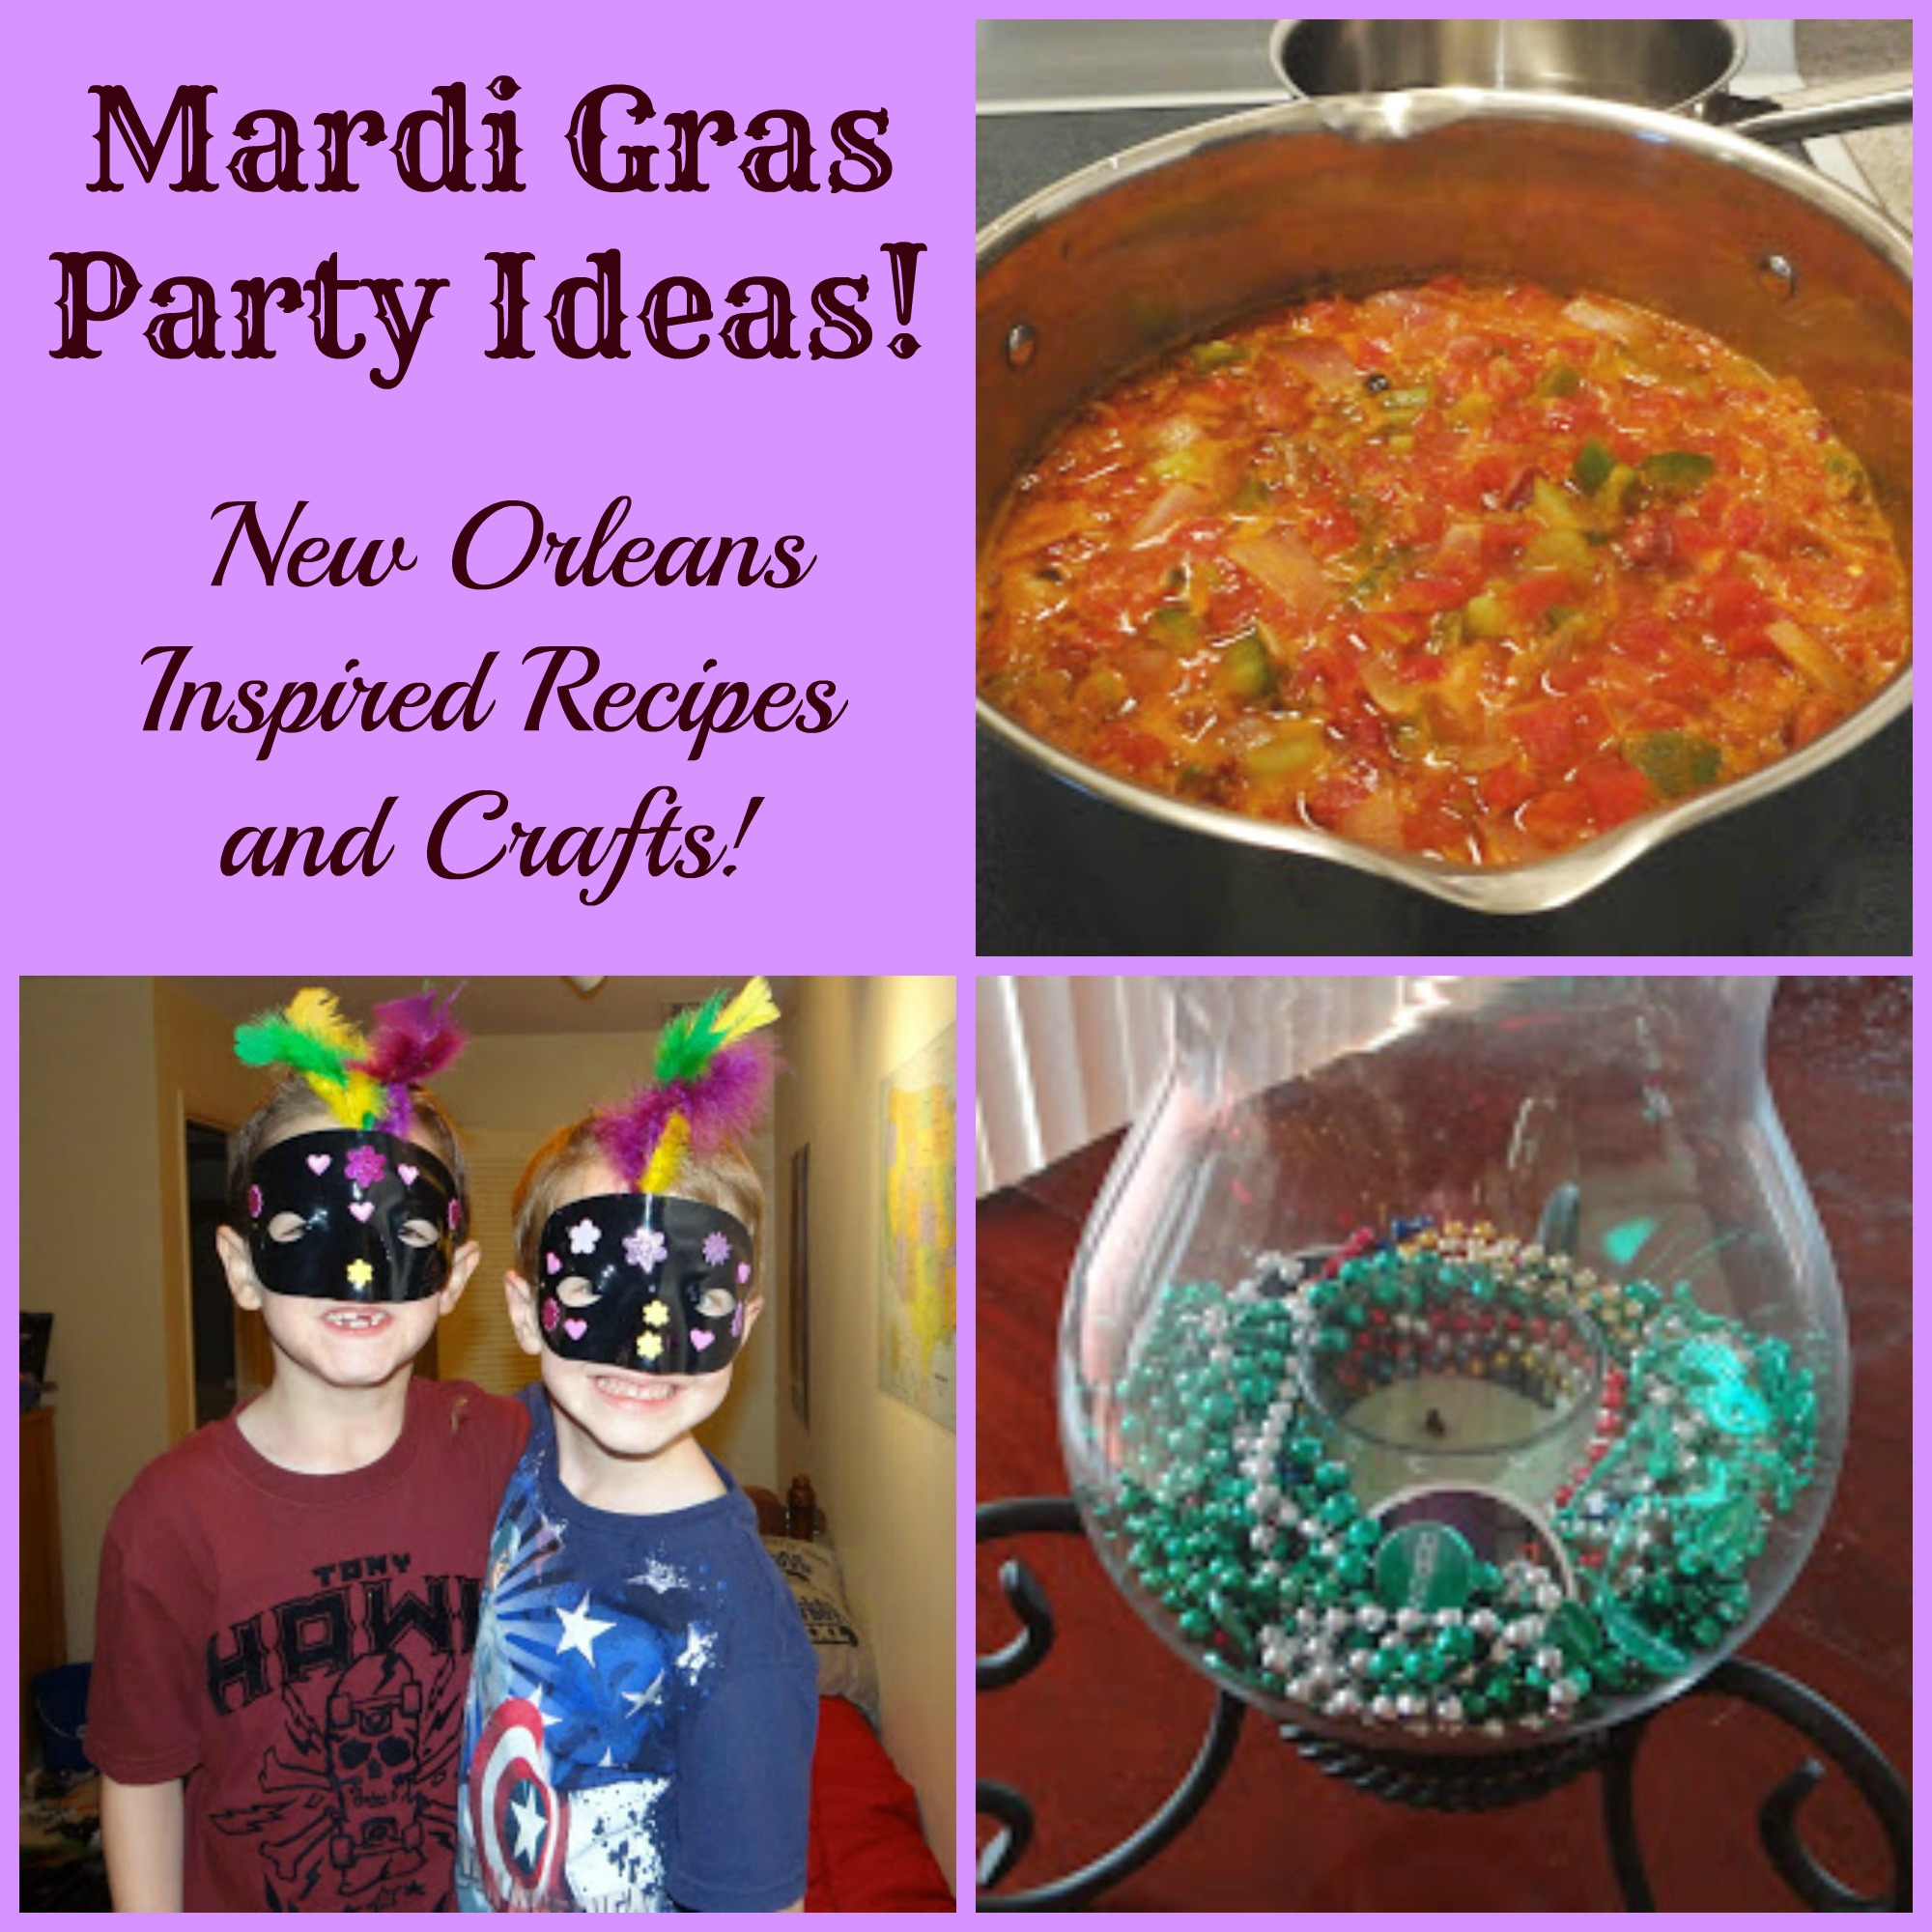 Mardi gras party ideas we made new orleans inspired recipes and mardi gras party ideas forumfinder Image collections